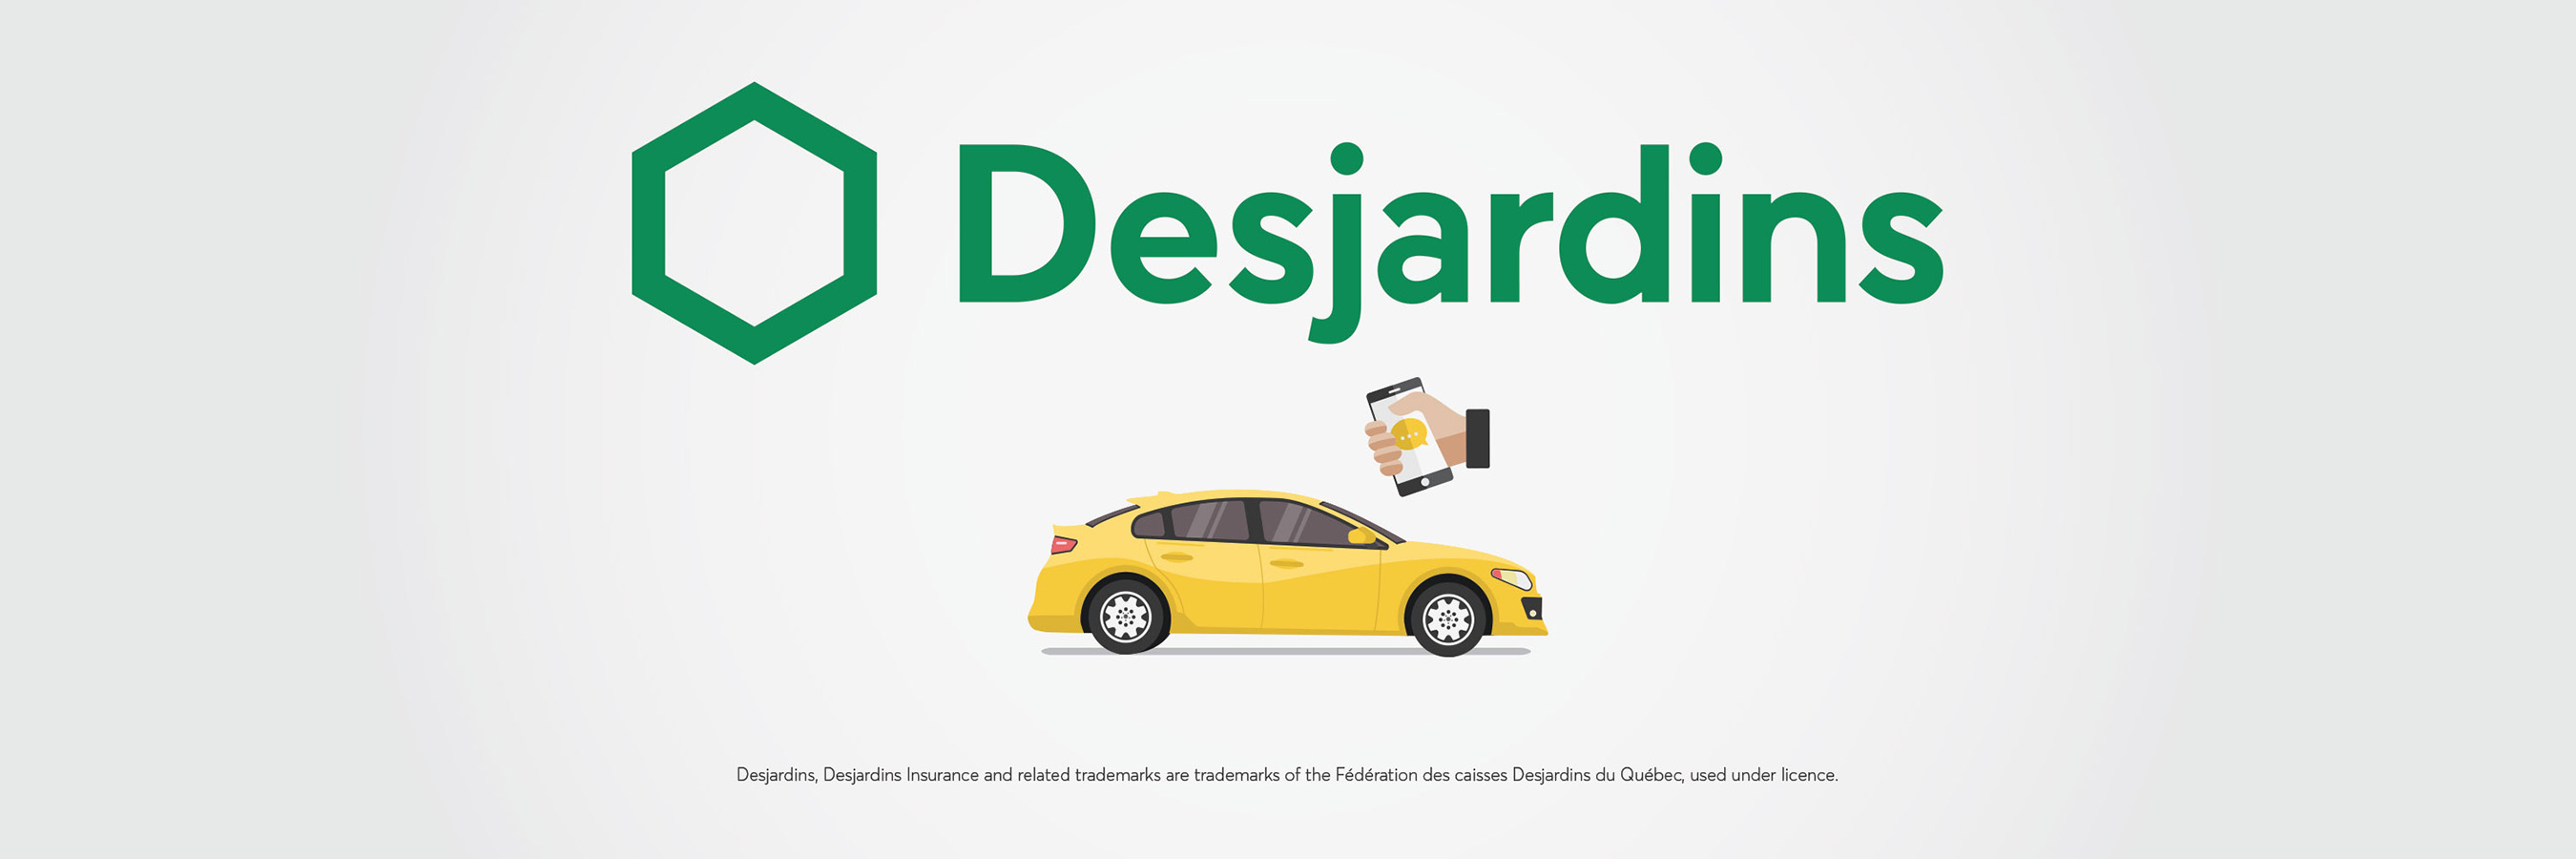 Desjardins Auto Insurance >> 8 Out Of 10 Canadians Say They Witness Distracted Driving Regularly